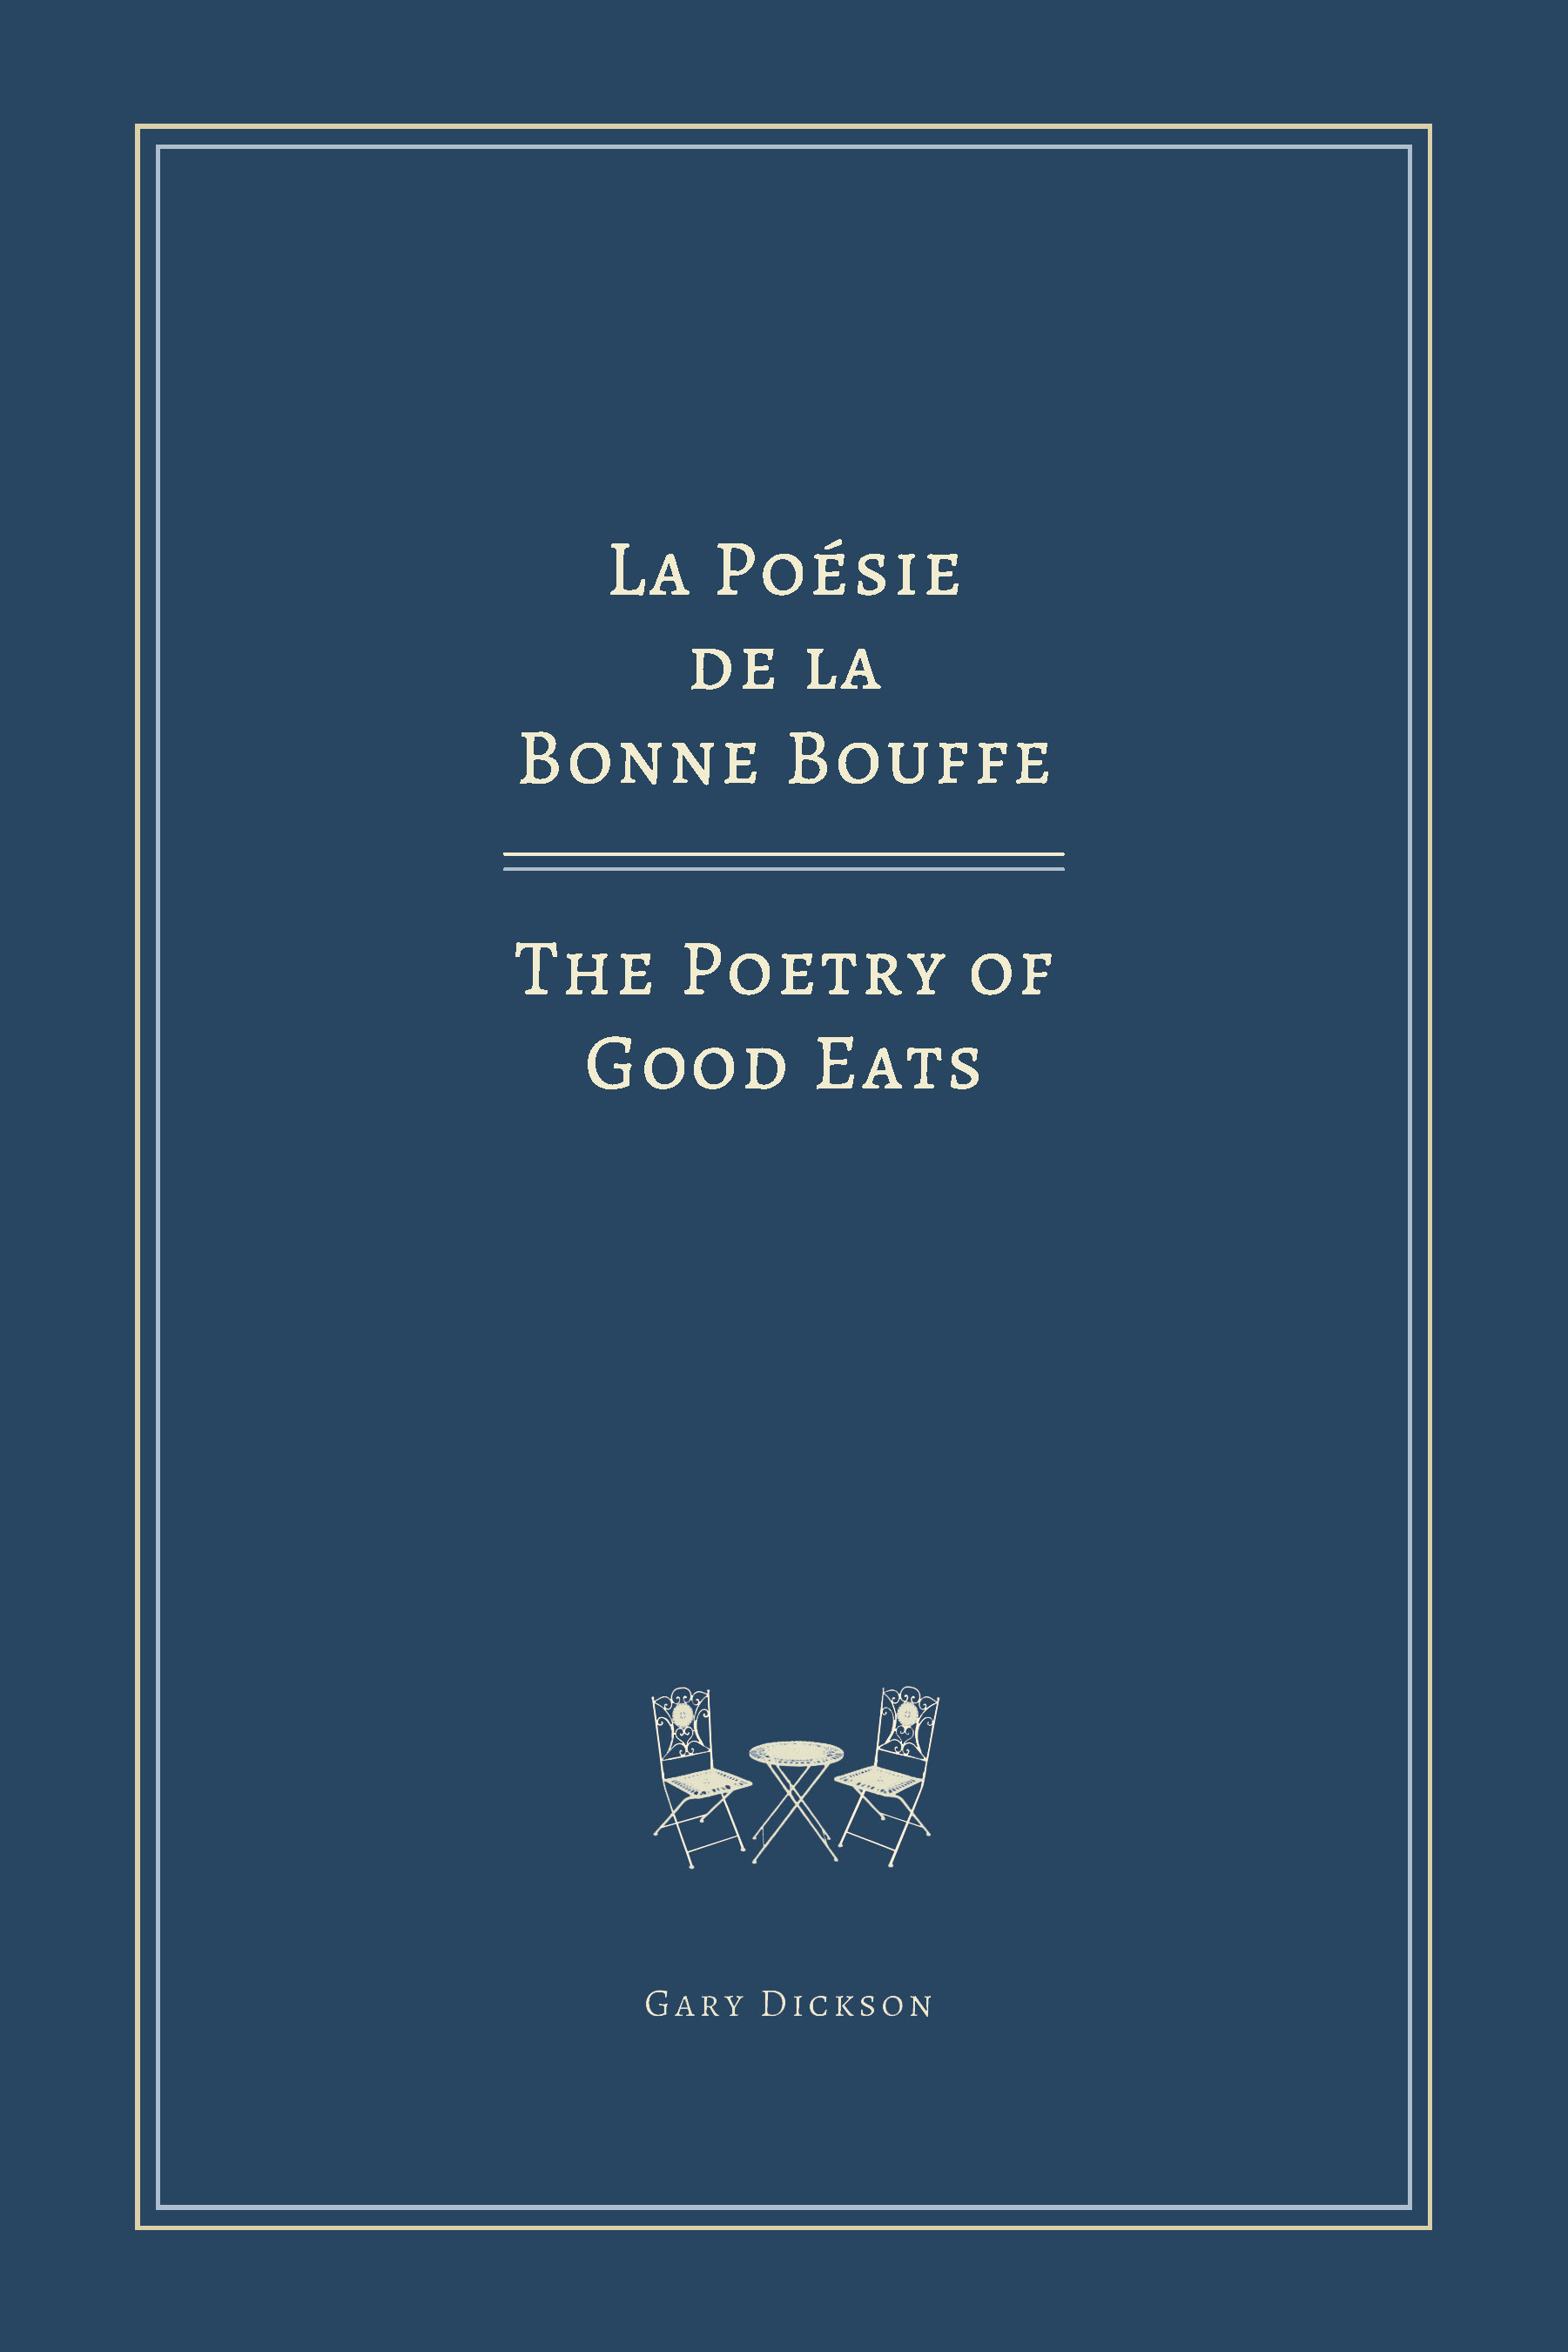 The Poetry of Good Eats